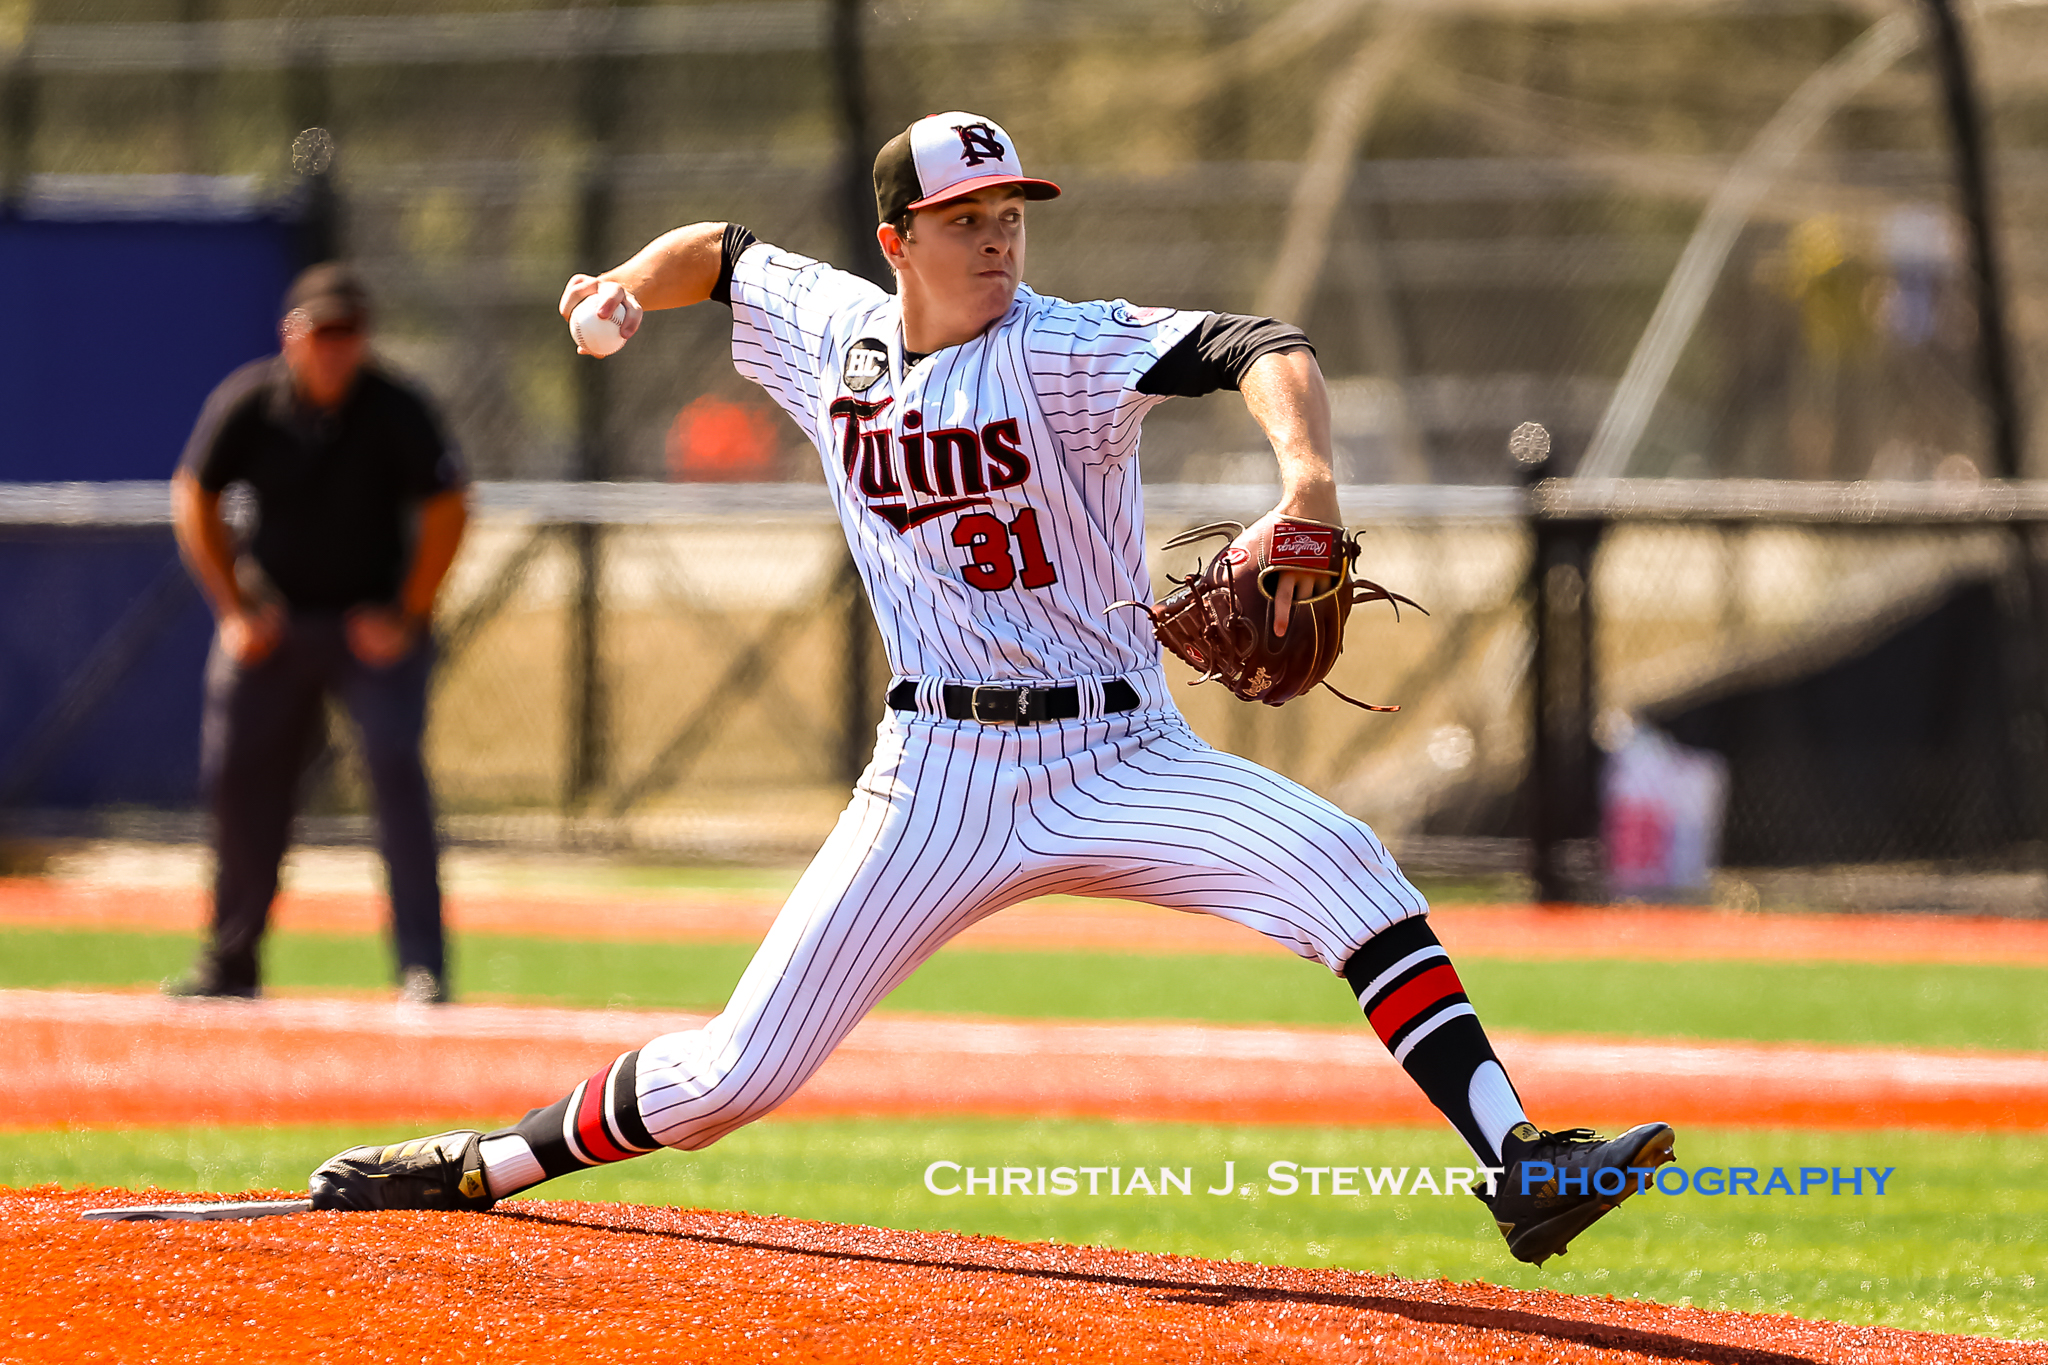 Liam Bates went the distance in the Twins victory over the Pirates. Photo: Christian J. Stewart.